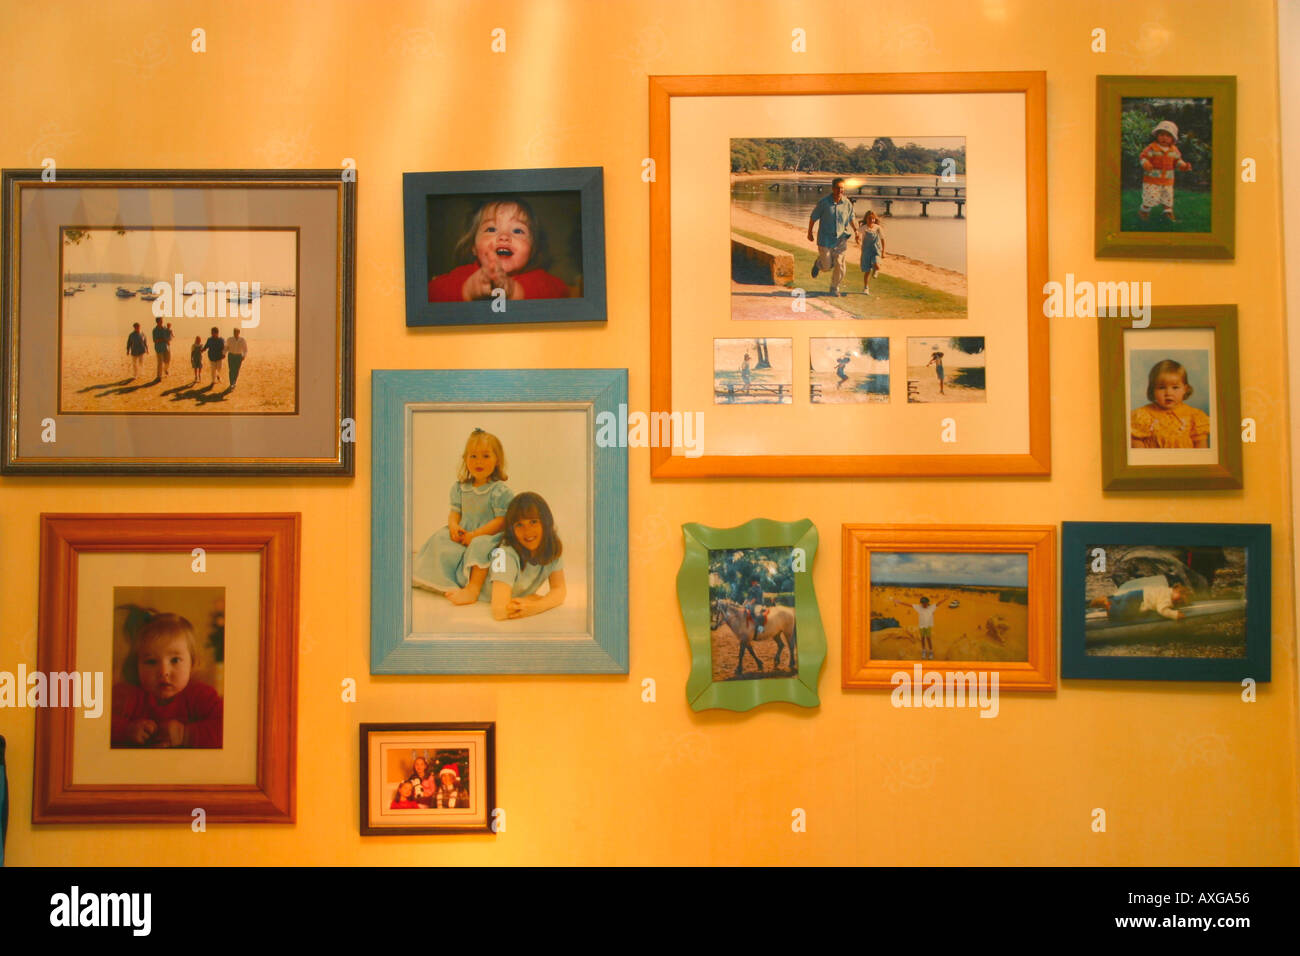 Nostalgia concept showing collection of family snapshots on house wall - Stock Image